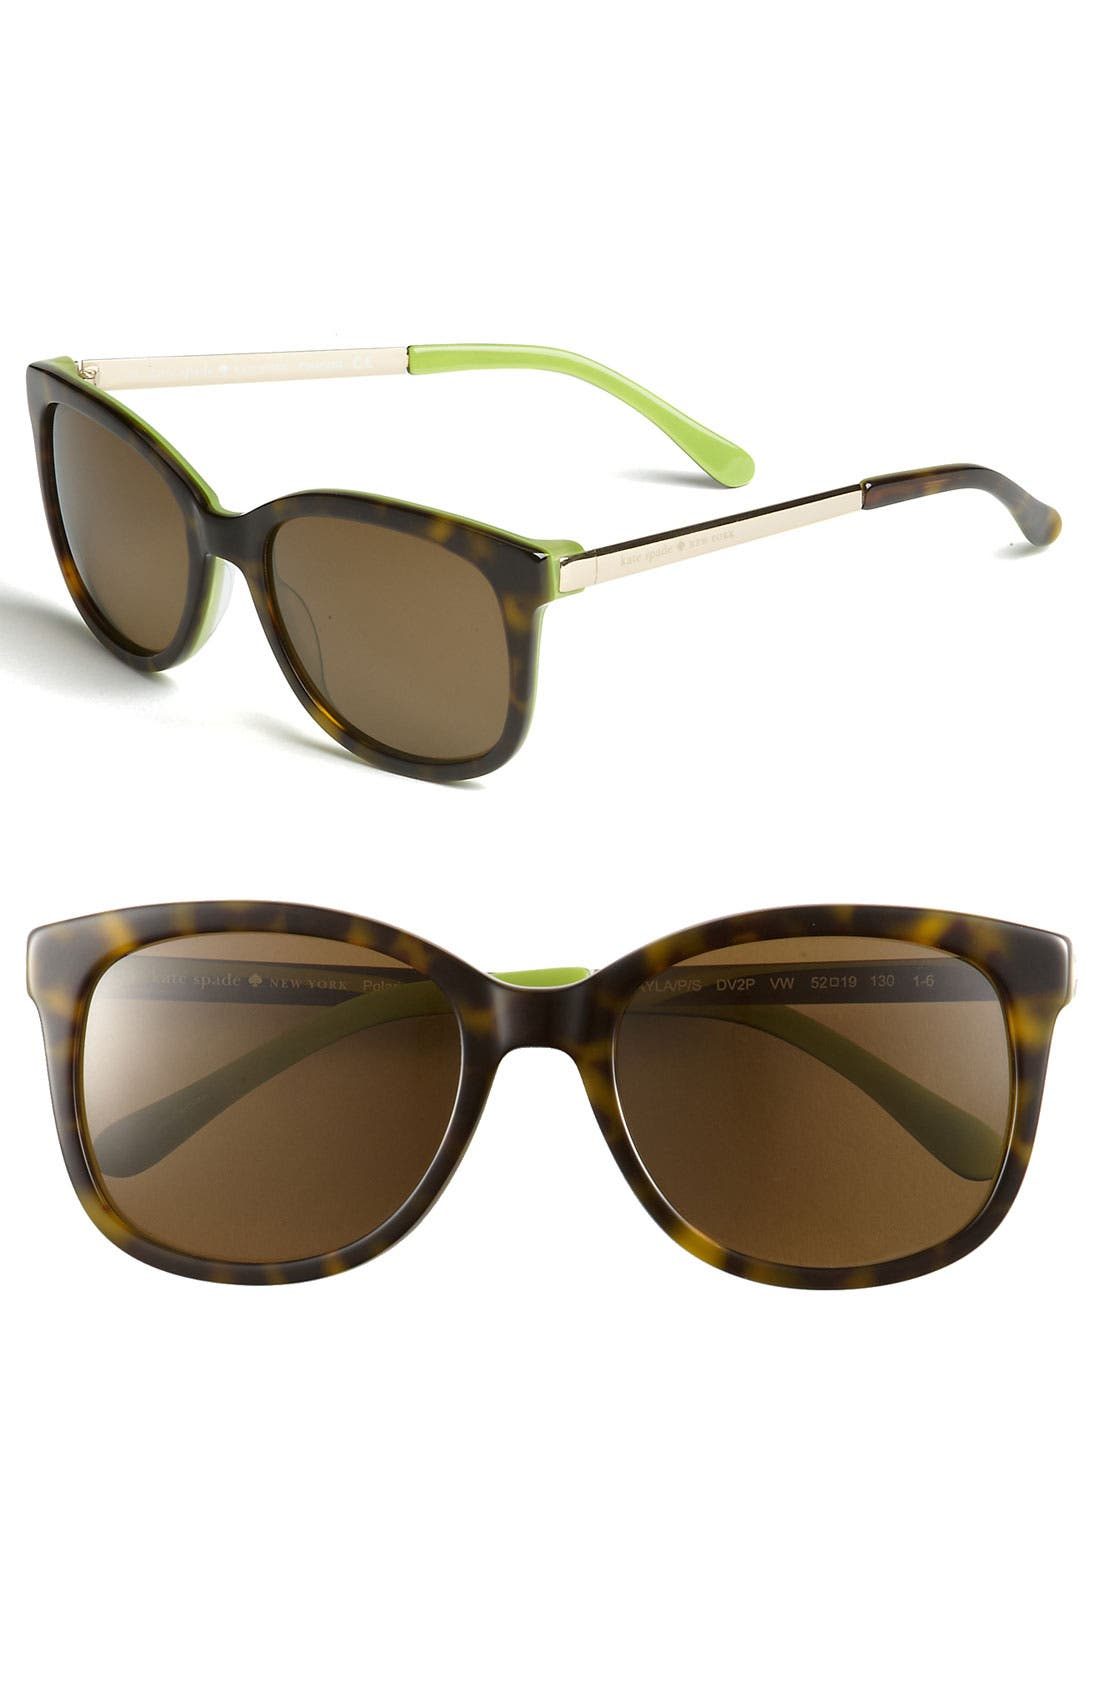 Main Image - kate spade new york 'gayla' 52mm oversized polarized sunglasses